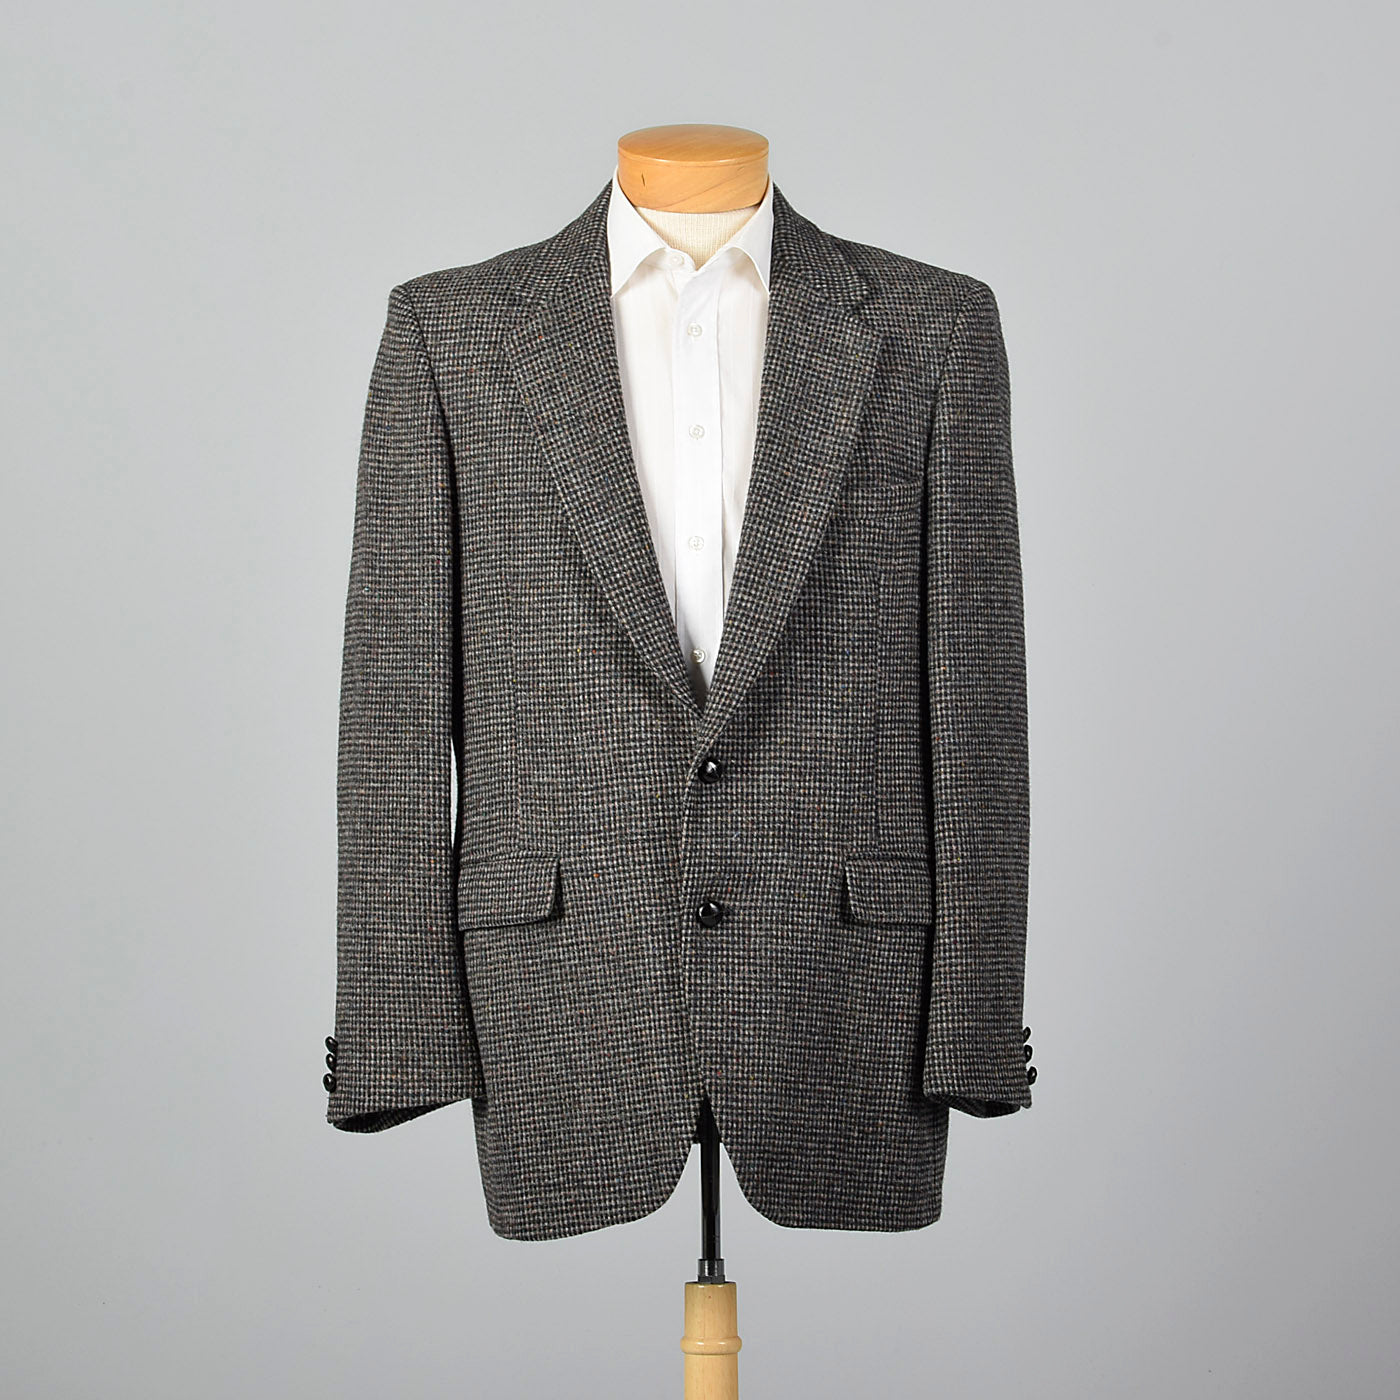 1970s Harris Tweed Gray Jacket